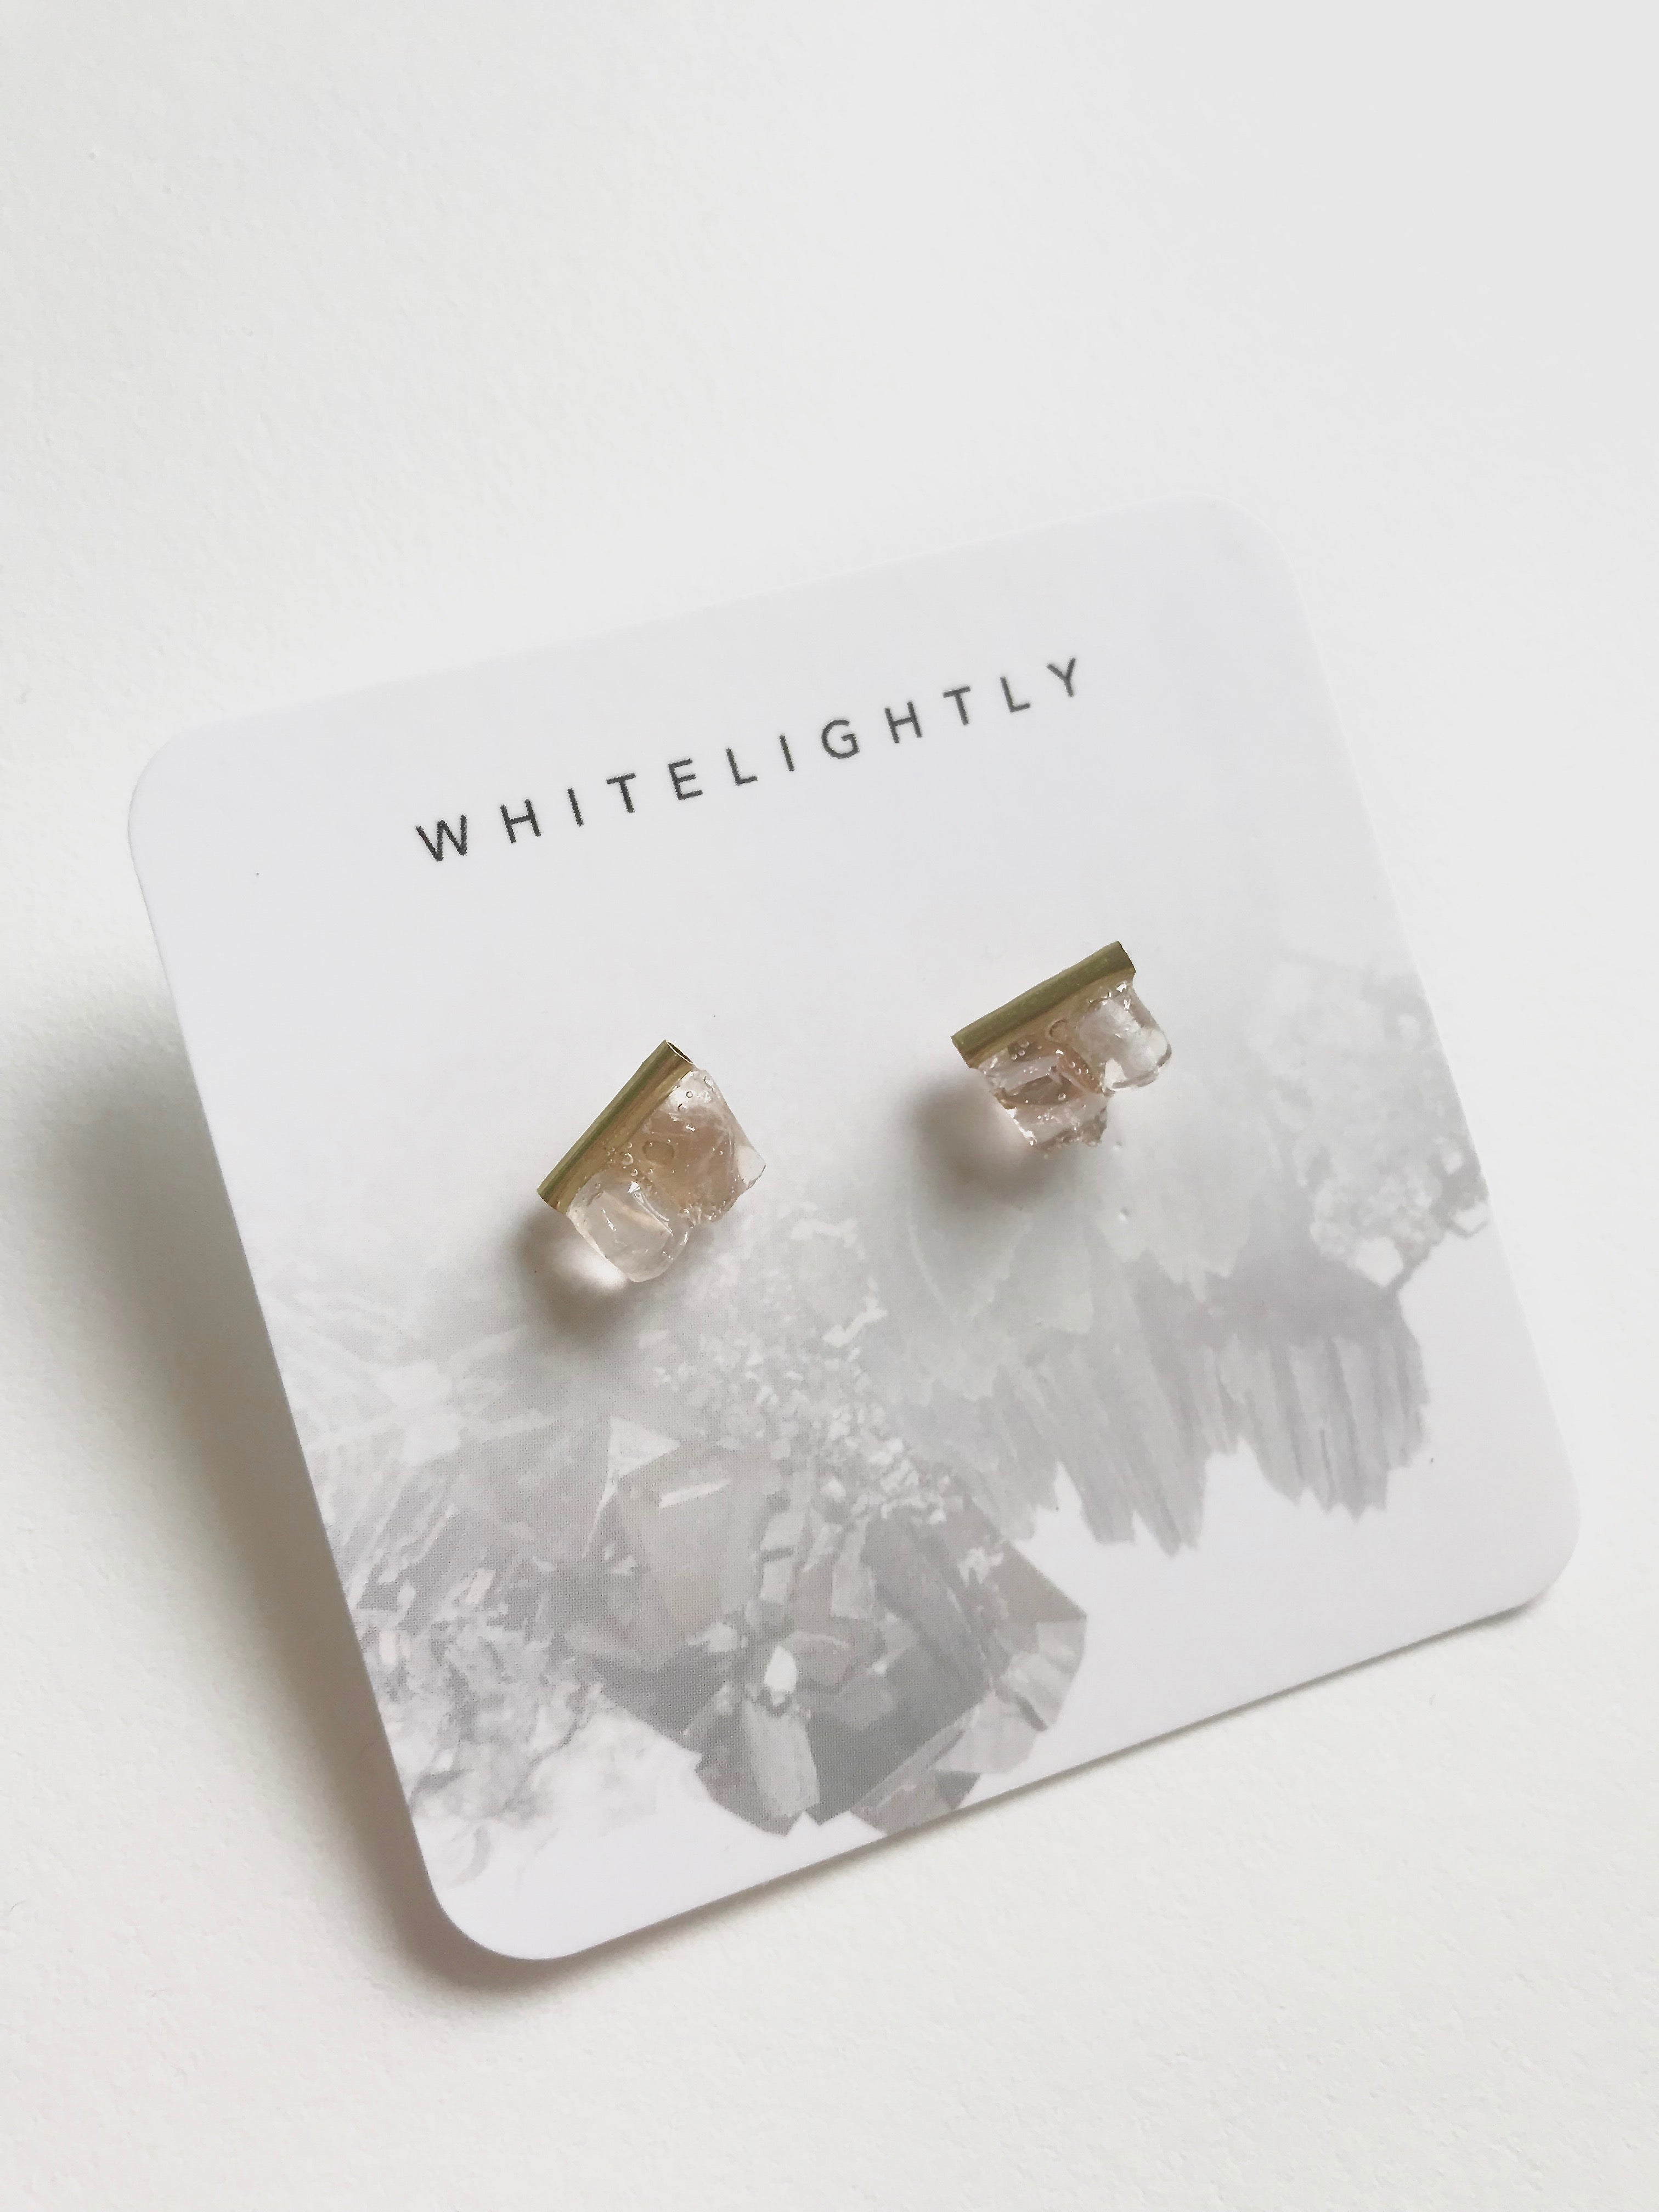 Crystal Earrings in Rose Quartz with Gold – WhiteLightly